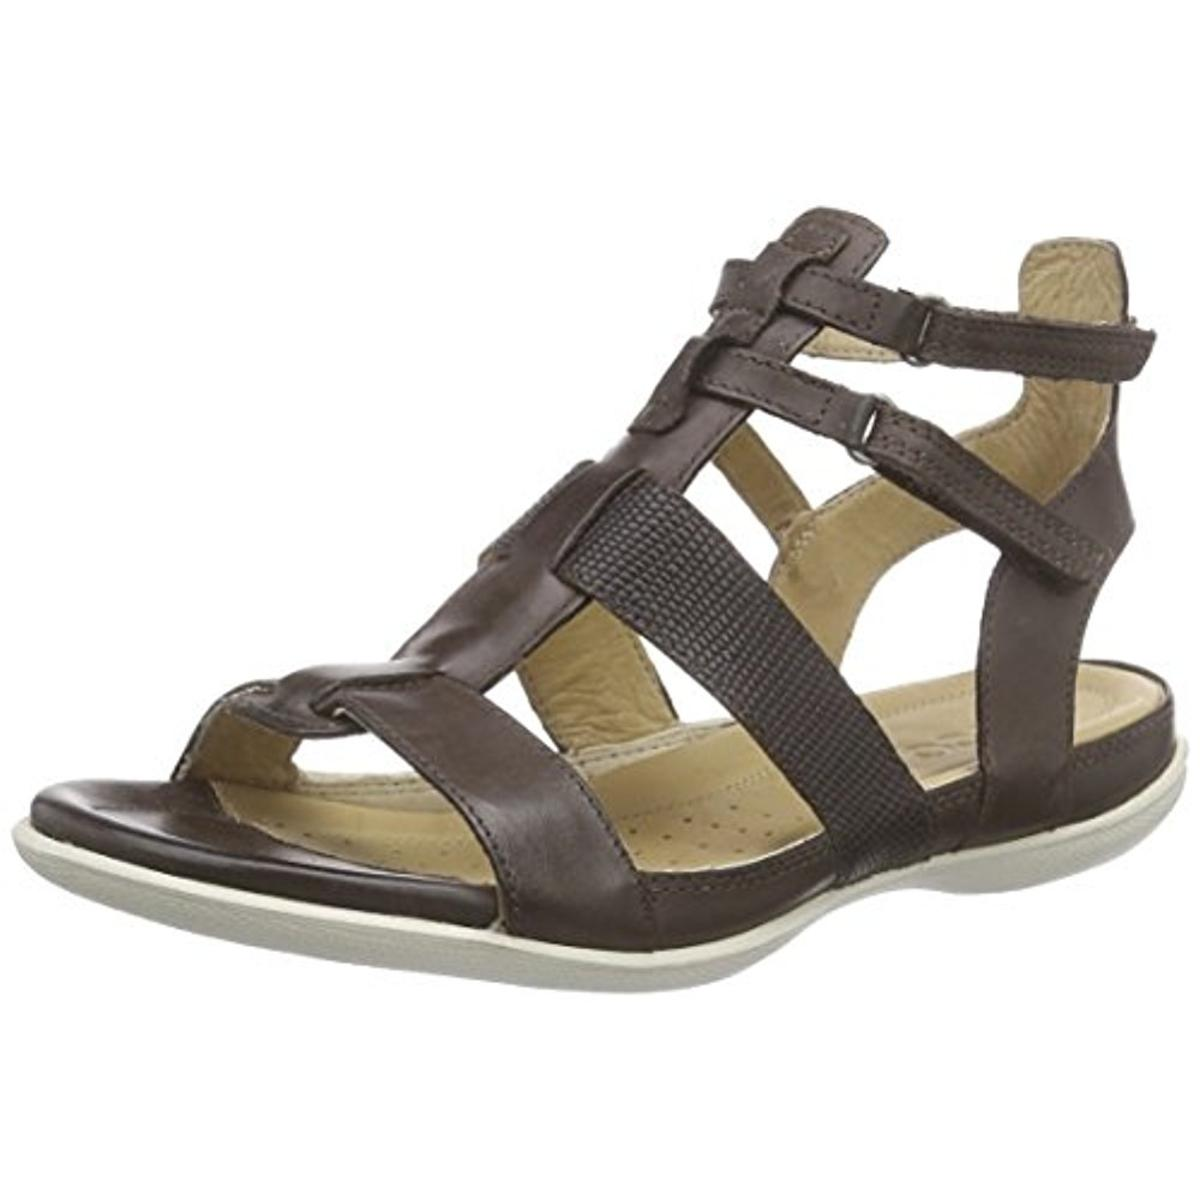 Ecco Womens Leather Textured Flat Sandals